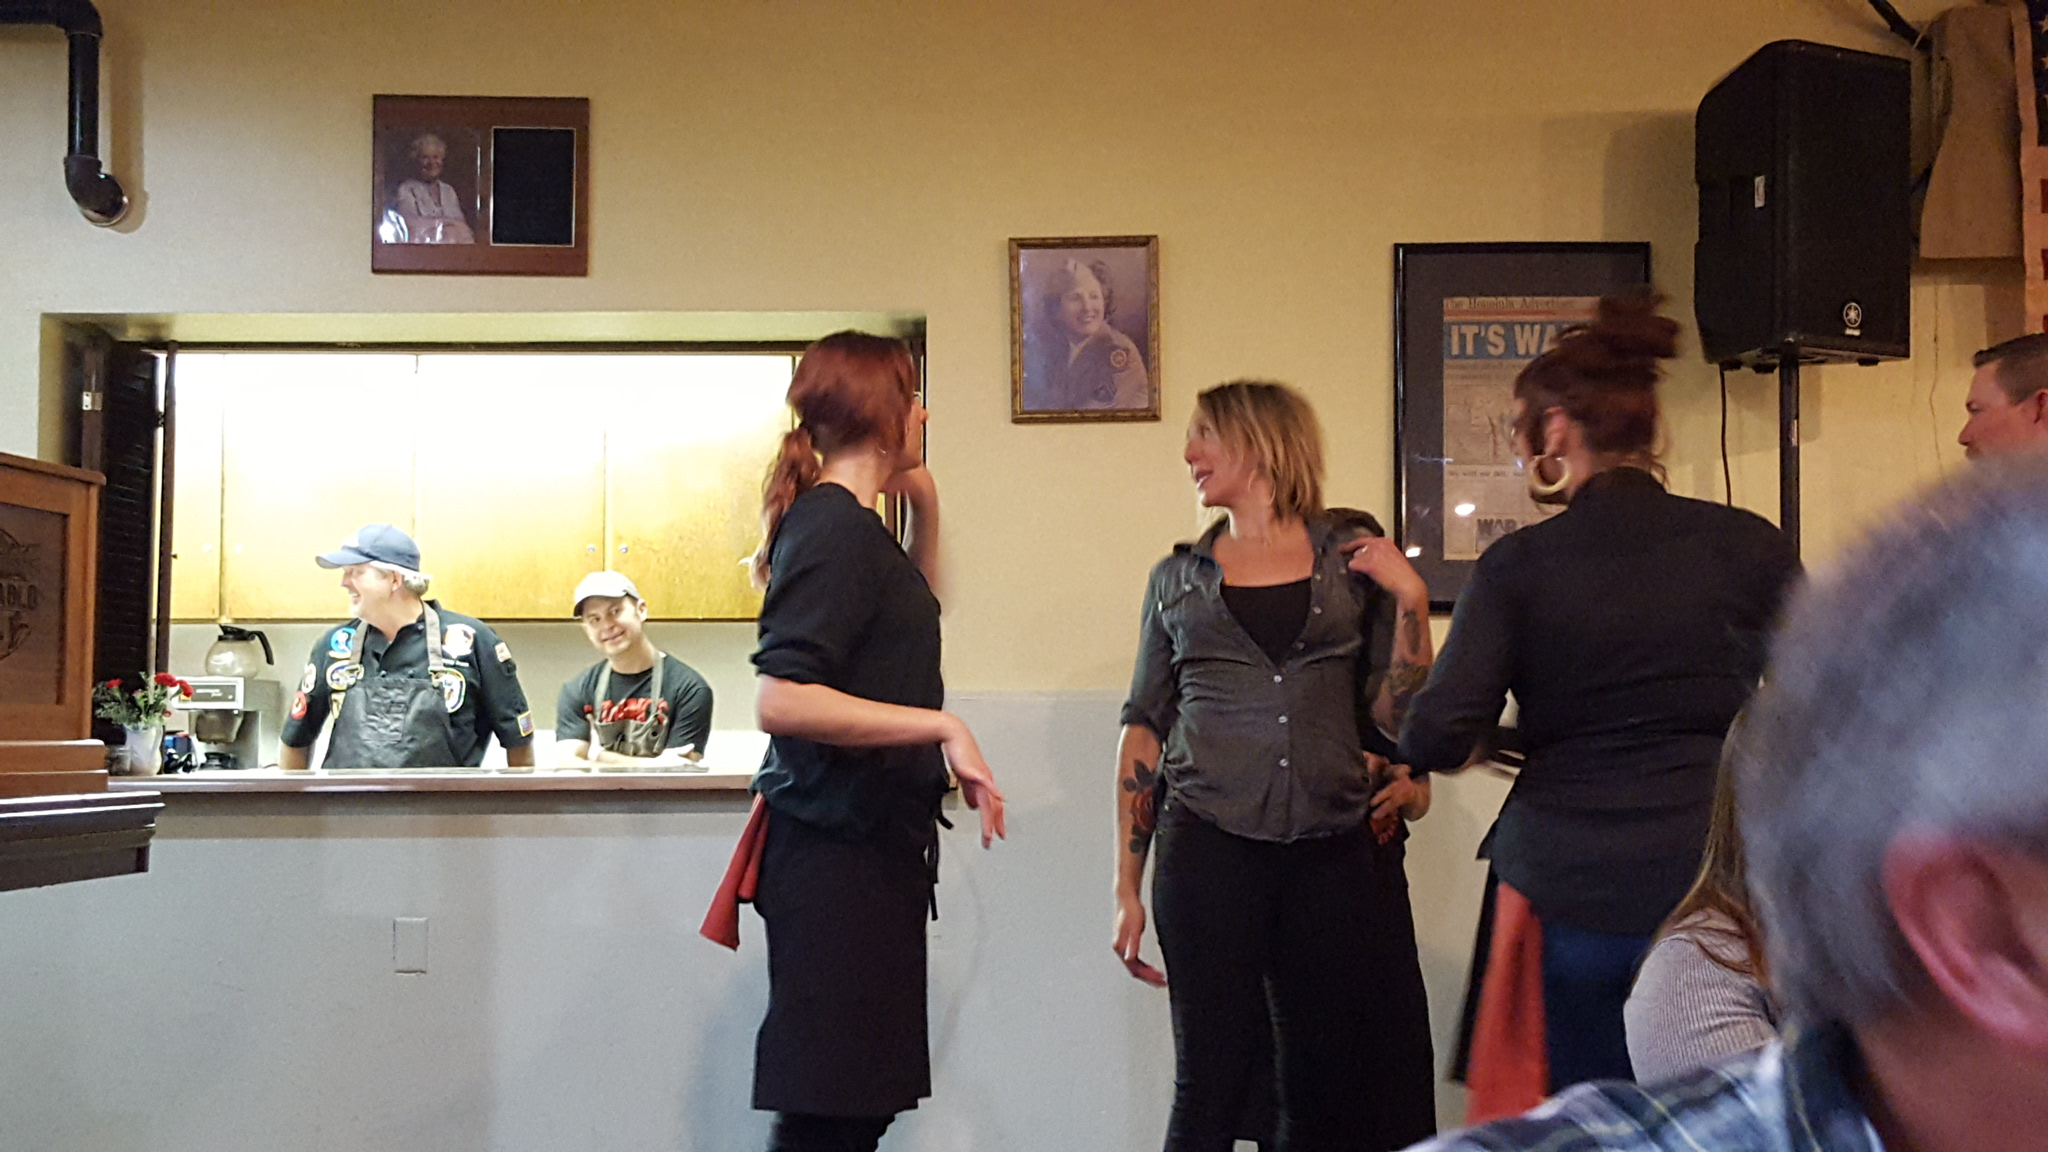 Chefs John Conley and Jamie Thousand look on while event coordinator, Eva Rupert, instructs her staff.